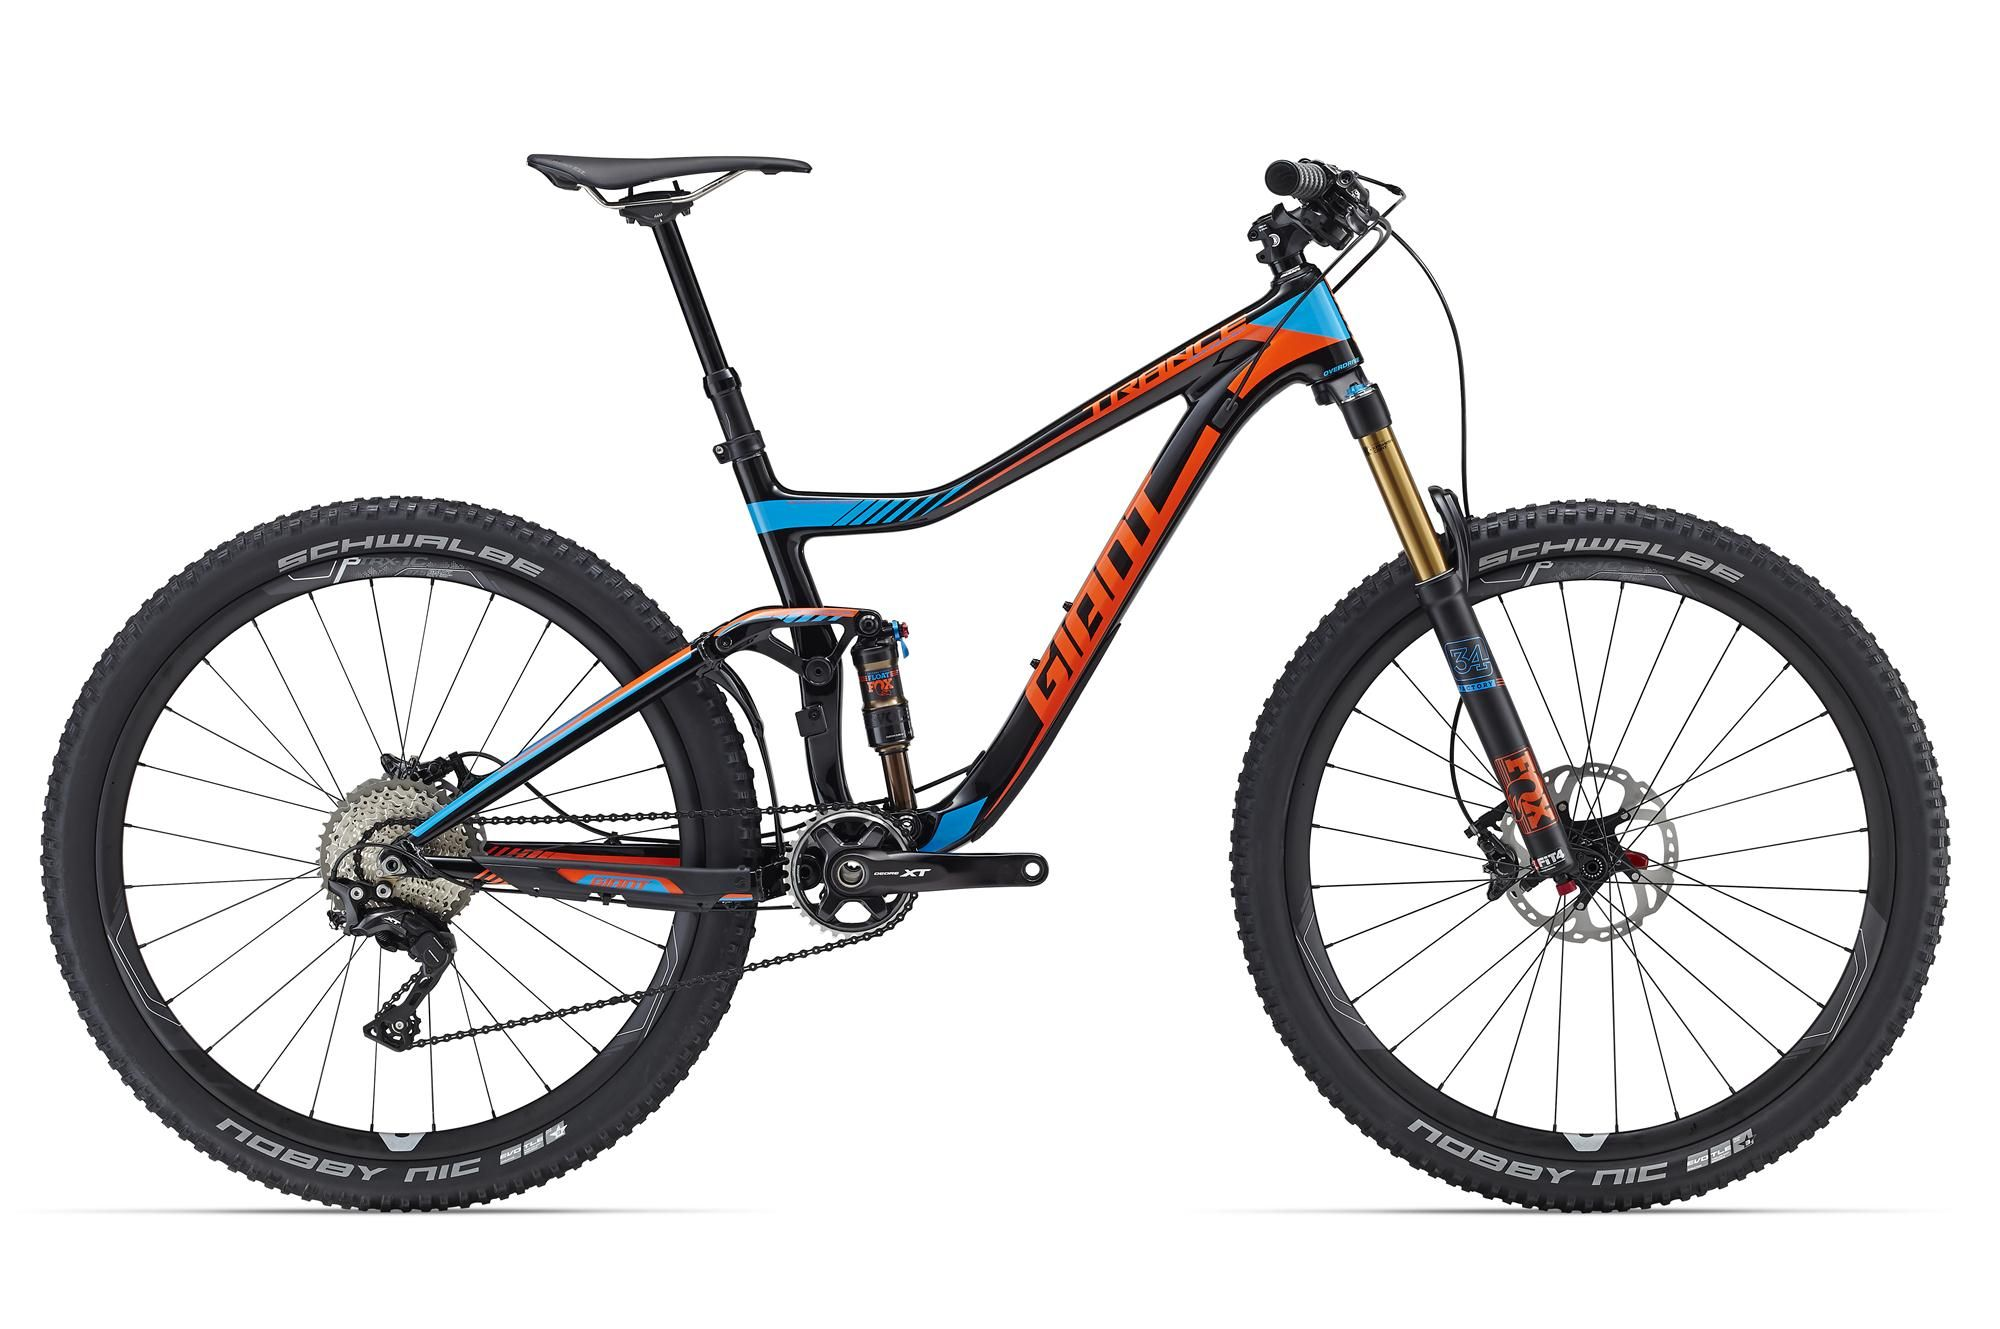 Велосипед Giant Trance Advanced 27.5 1 2016 велосипед giant anthem advanced 27 5 2 2016